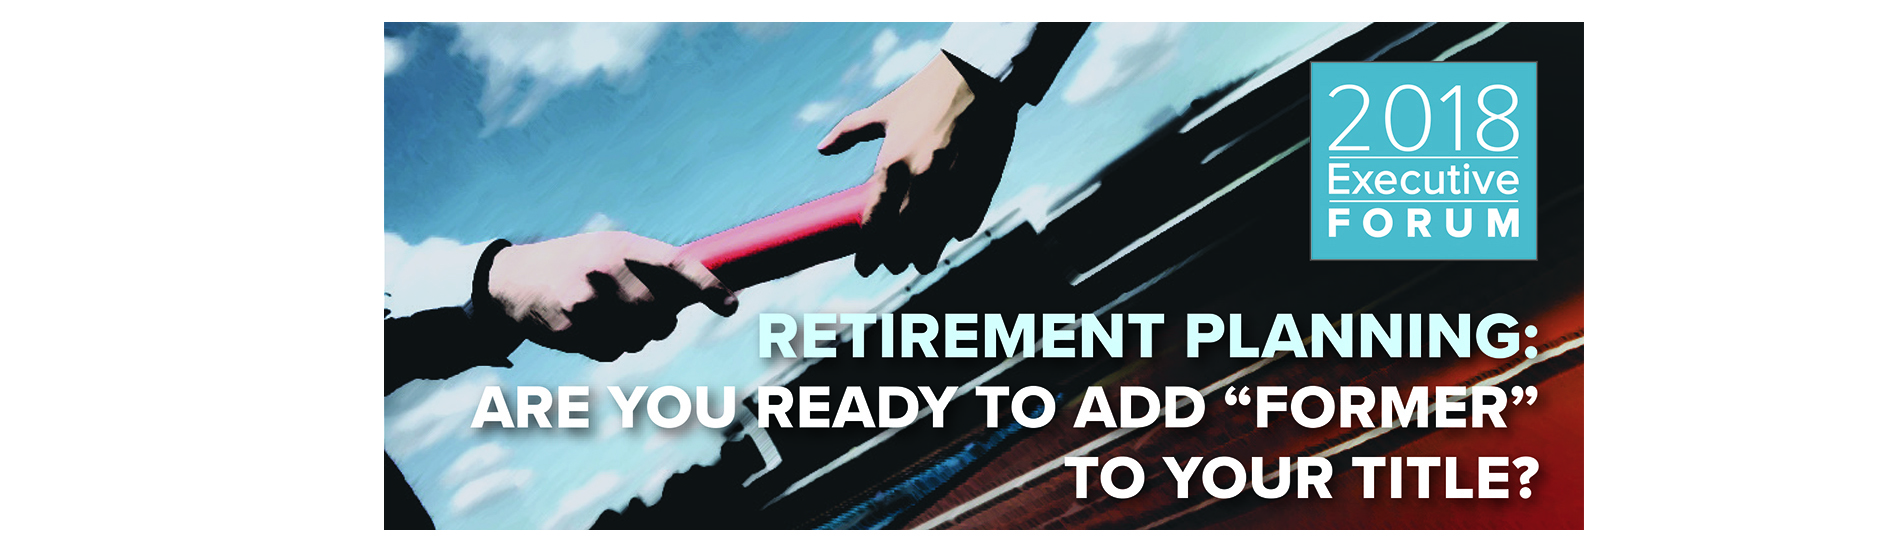 Executive Forum - Retirement Planning: Are you ready to Add